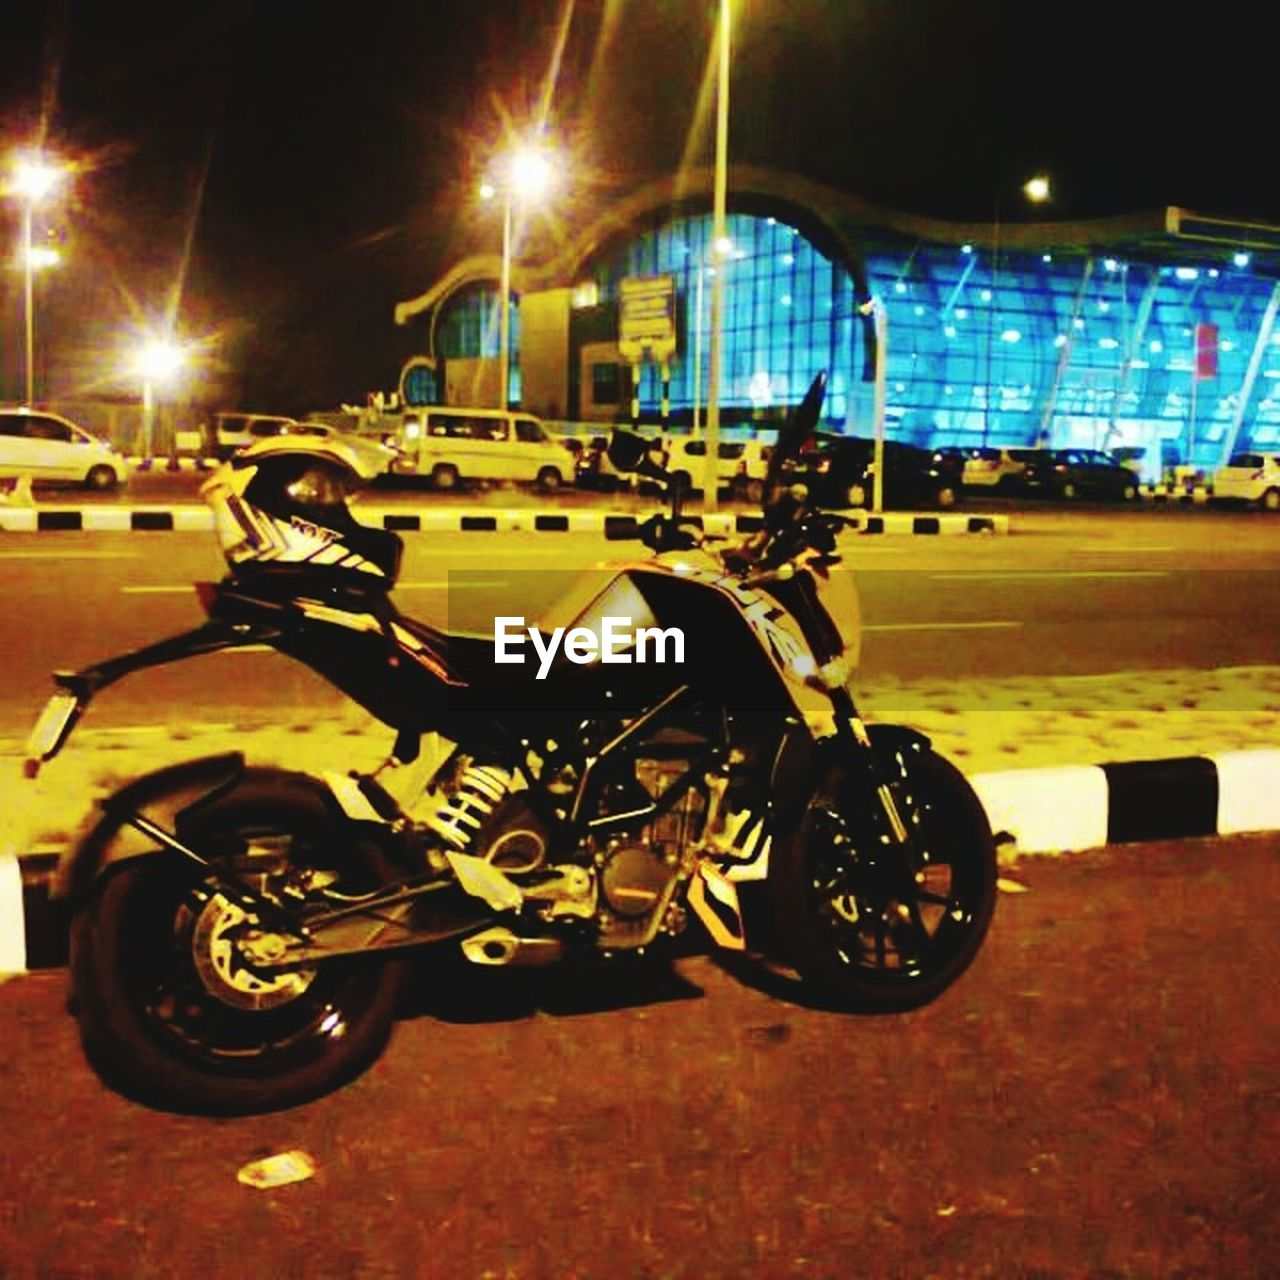 transportation, land vehicle, night, motorcycle, mode of transport, illuminated, street, built structure, outdoors, stationary, helmet, building exterior, men, scooter, one person, sports race, people